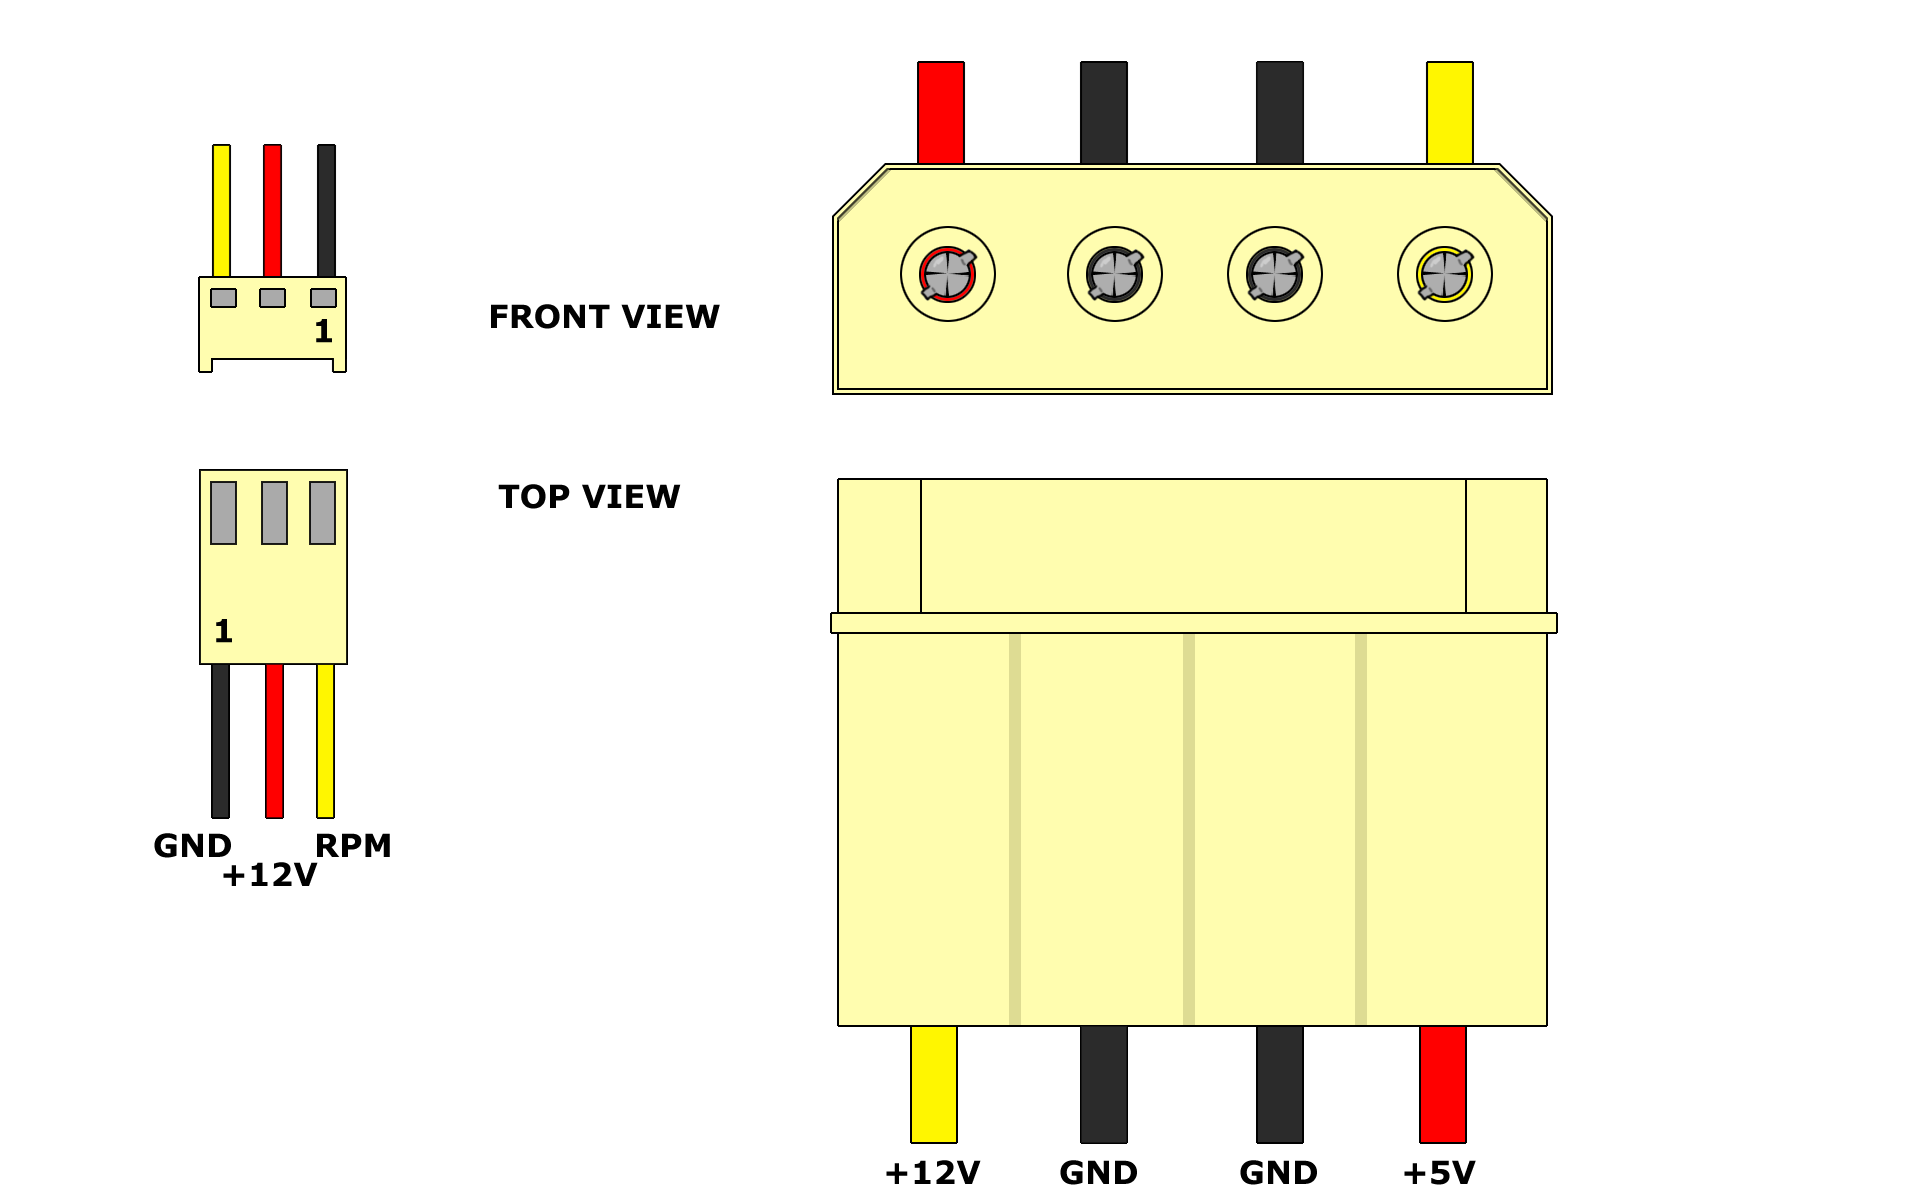 PC fan pinout Molex connector, Diagram chart, Robotics